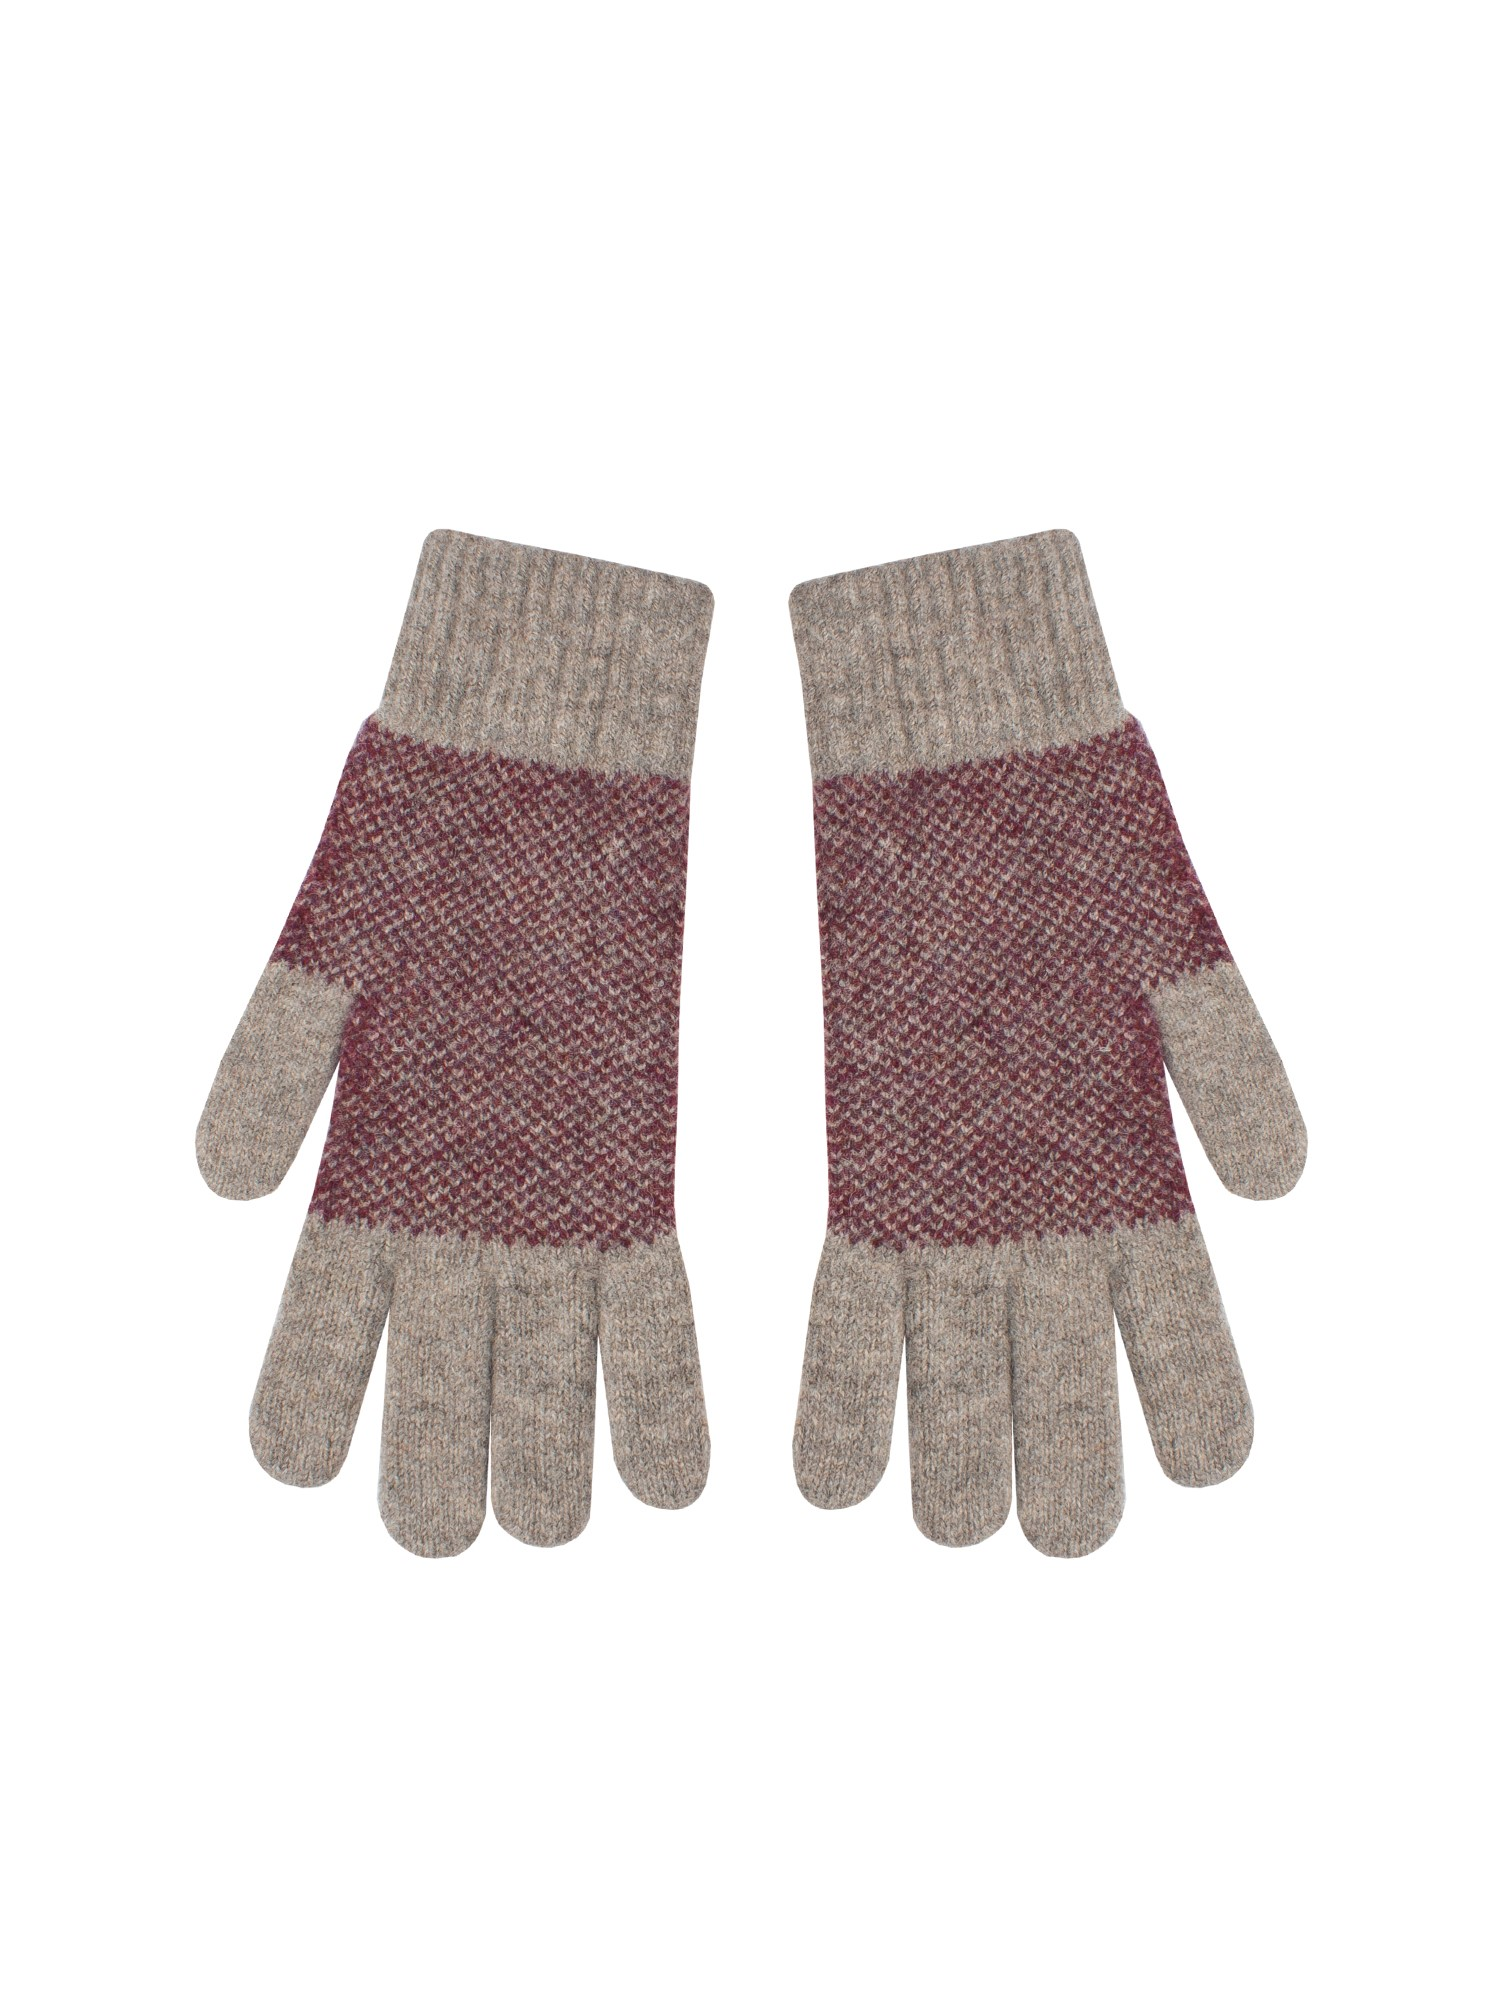 Ben Sherman Rust Panelled Knitted Gloves